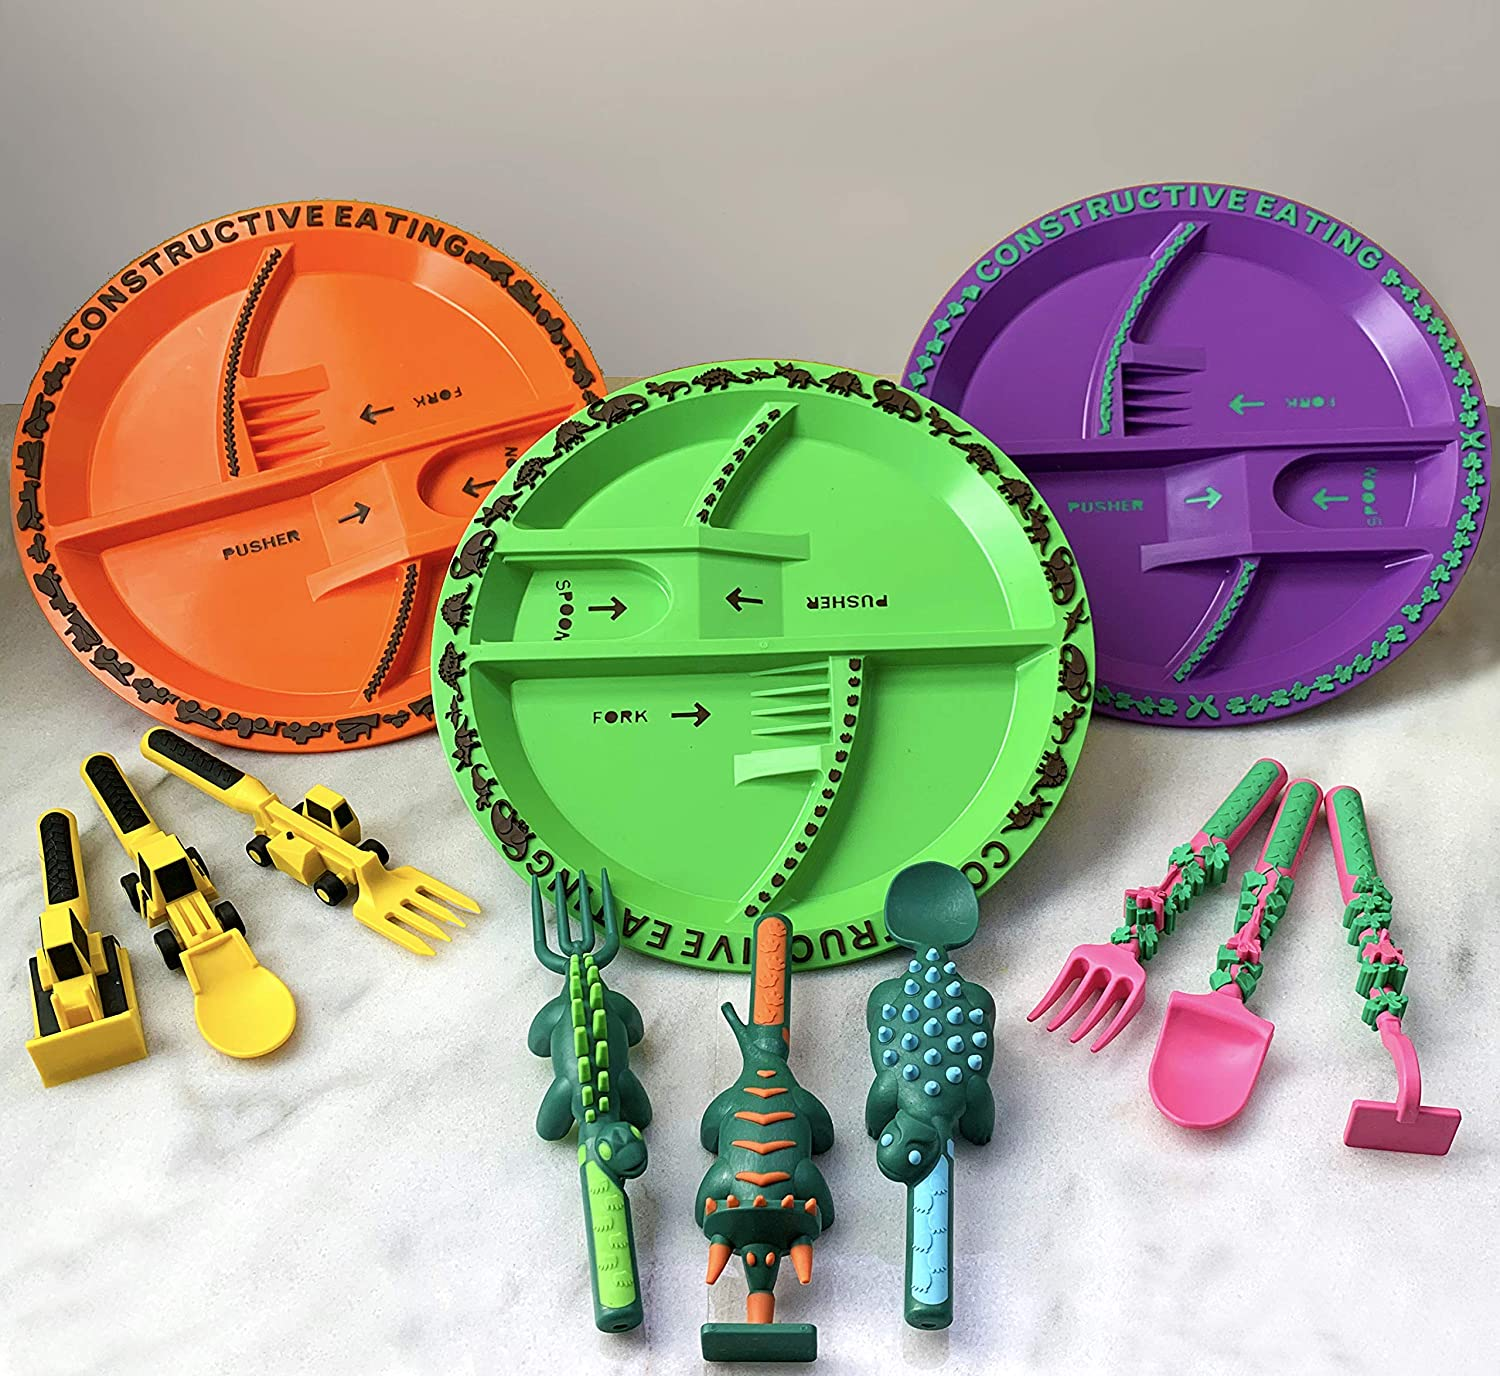 Constructive Eating Construction, Dinosaur, and Garden Fairy Combo with 3 Utensil Sets and 3 Plates for Toddlers, Infants, Babies and Kids - Made in The USA Using Materials Tested for Safety